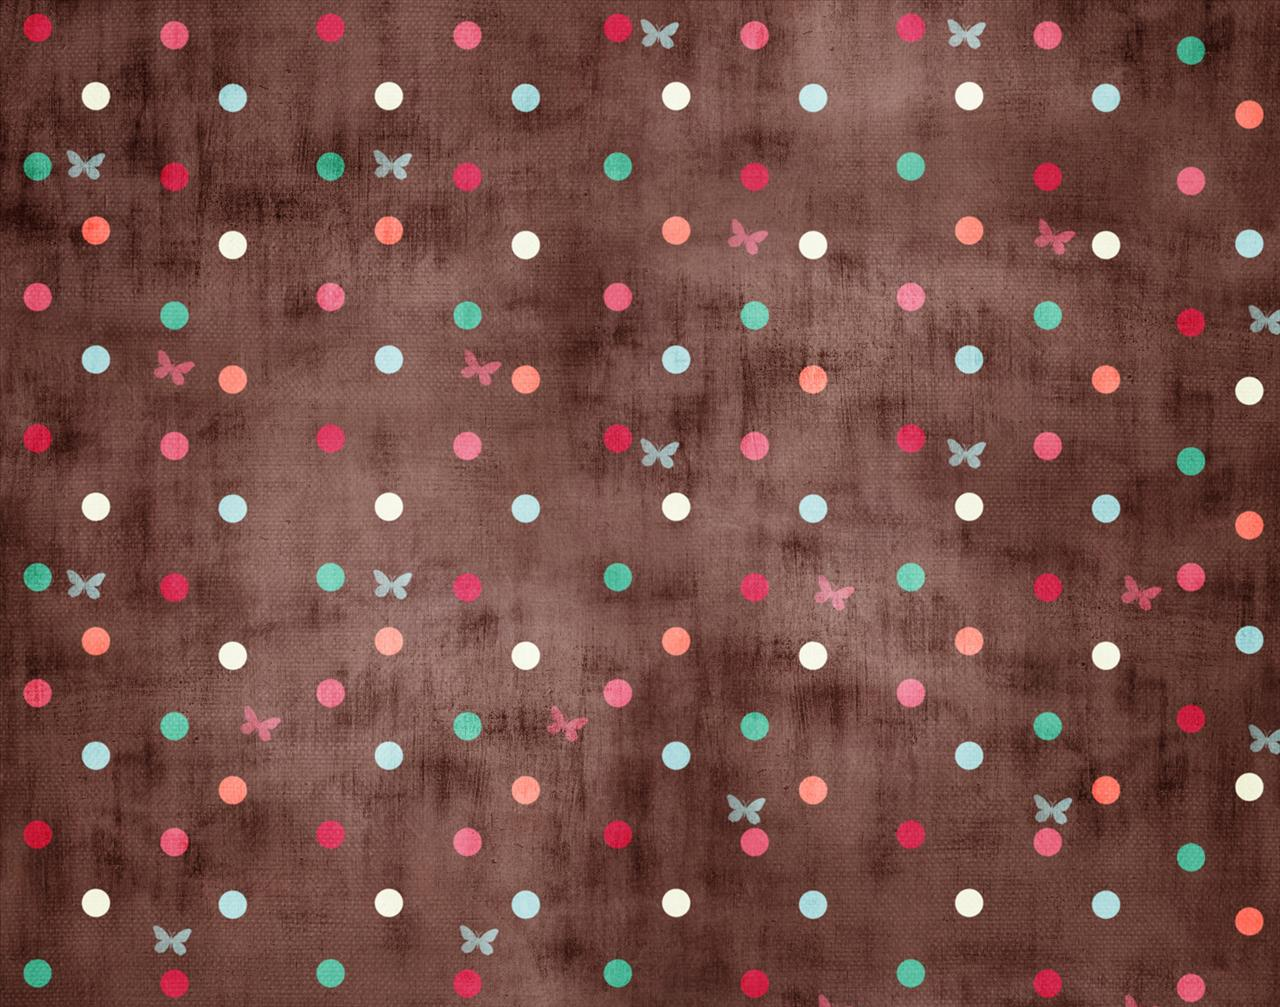 Dots and Butterfly Backgrounds